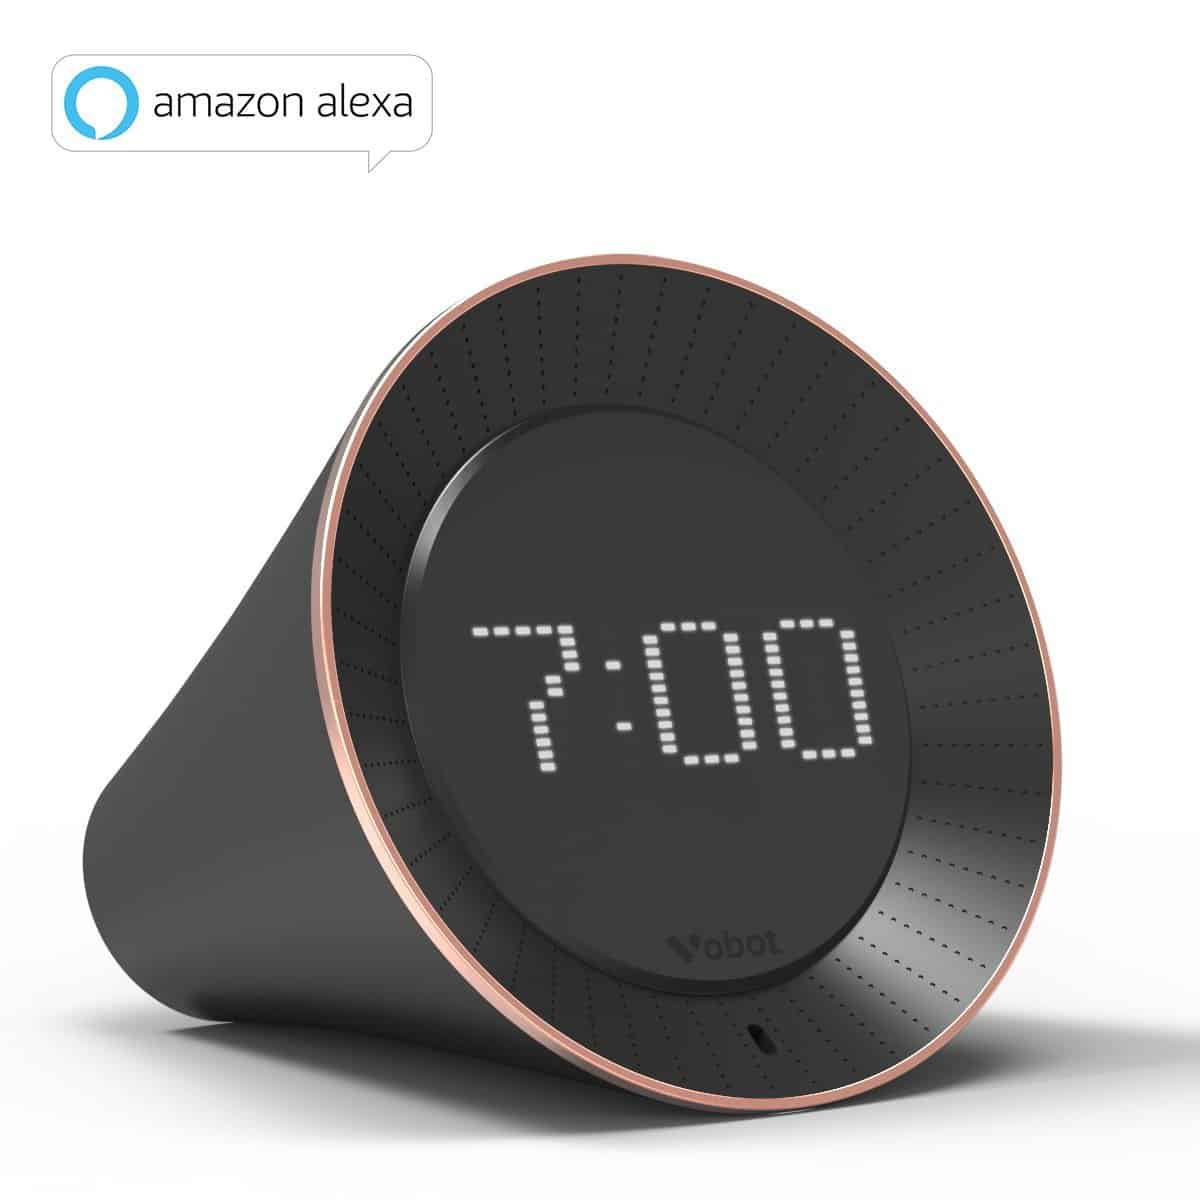 Vobot Smart Alarm Clock with Alexa Review